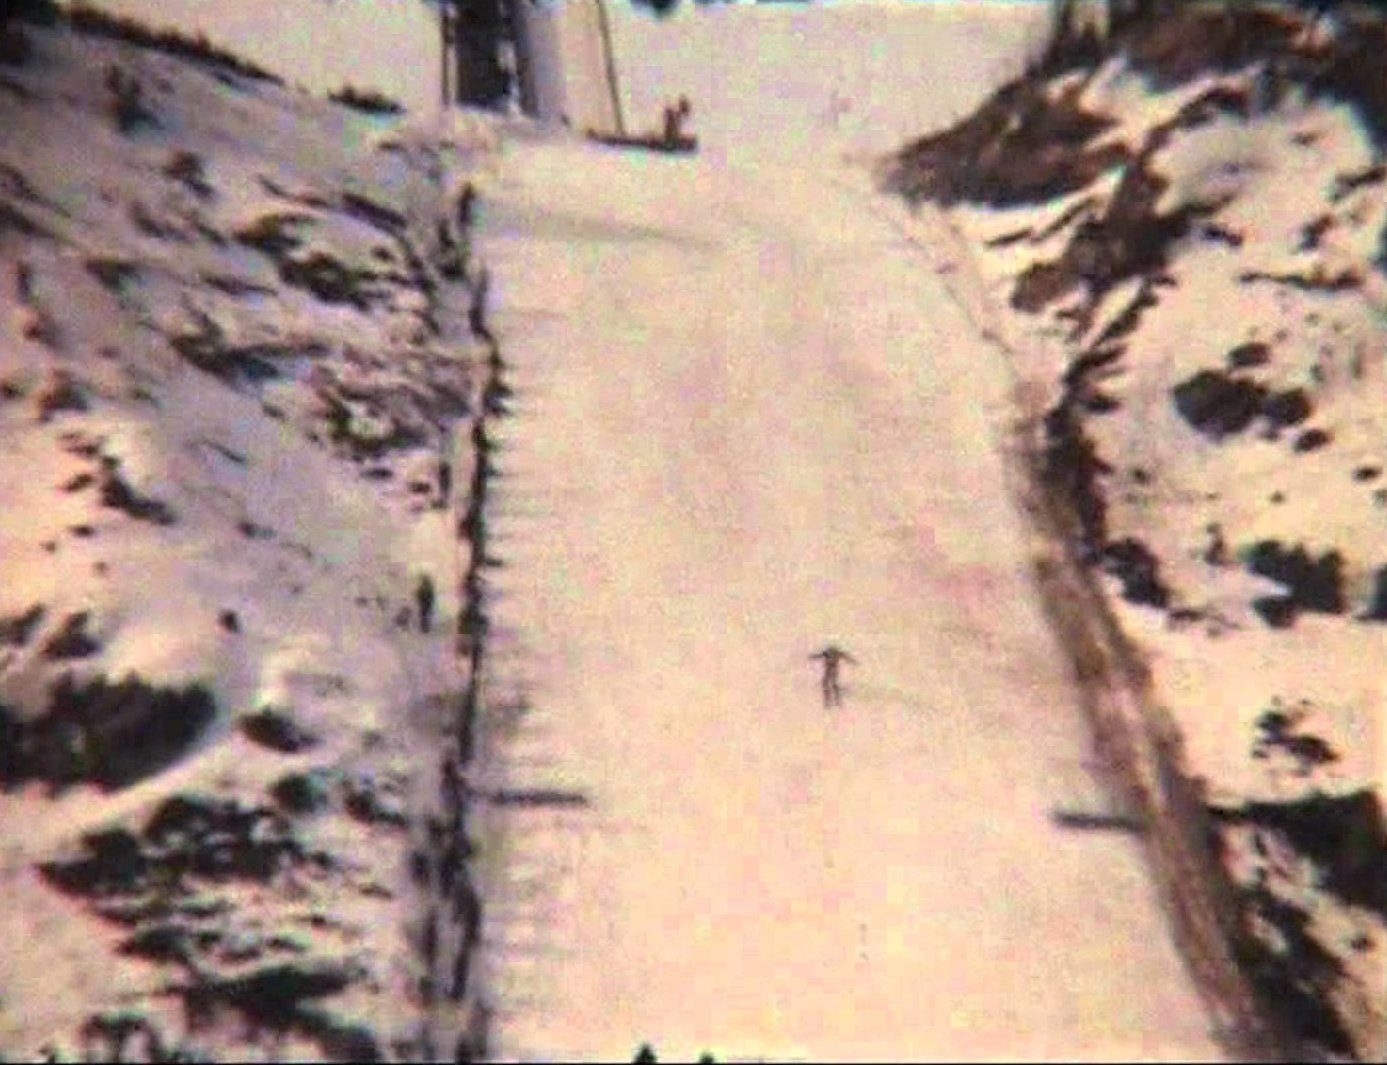 1972 Copper Peak ski flying event